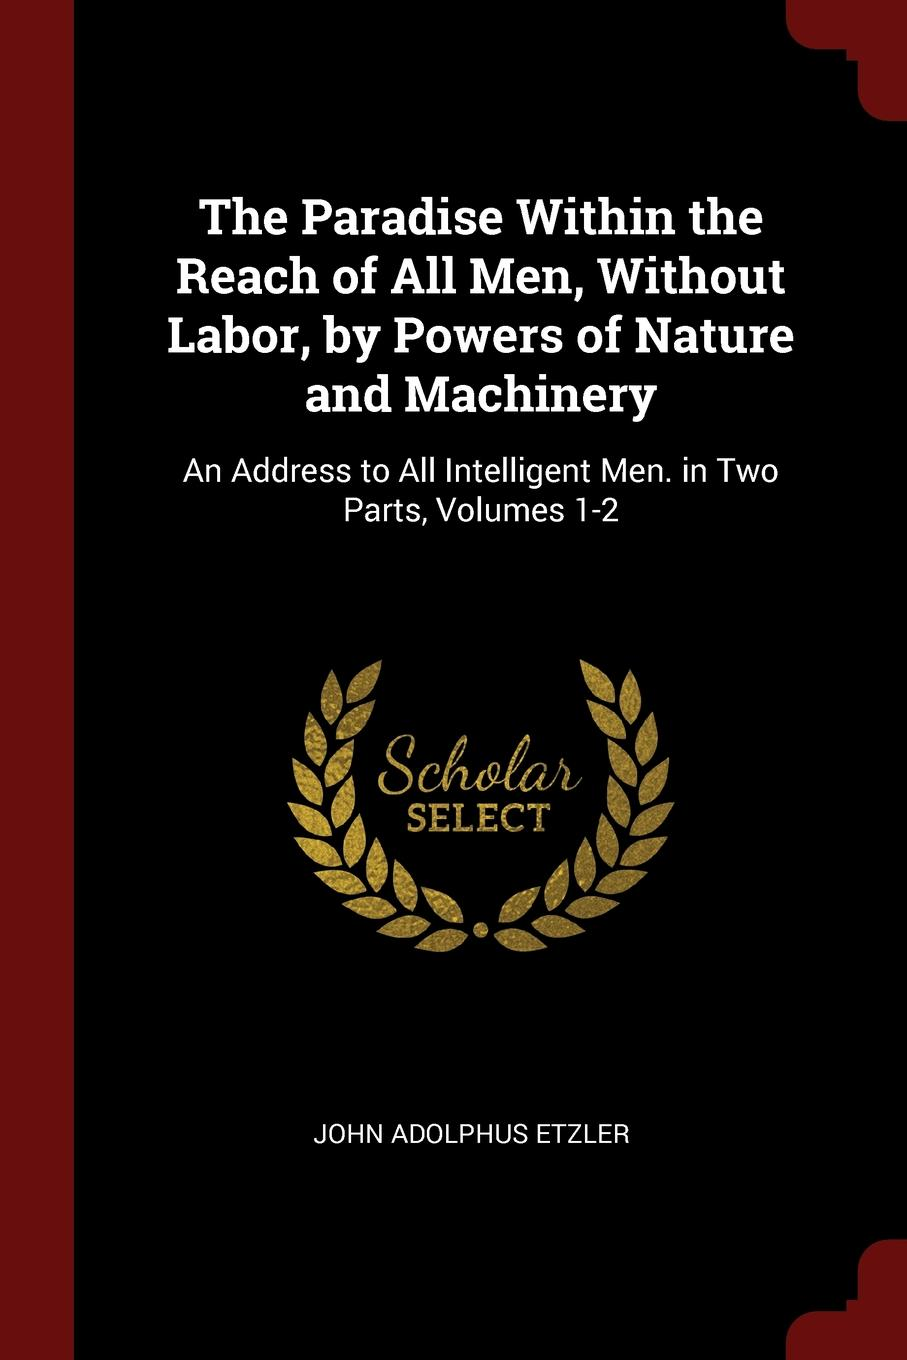 лучшая цена John Adolphus Etzler The Paradise Within the Reach of All Men, Without Labor, by Powers of Nature and Machinery. An Address to All Intelligent Men. in Two Parts, Volumes 1-2